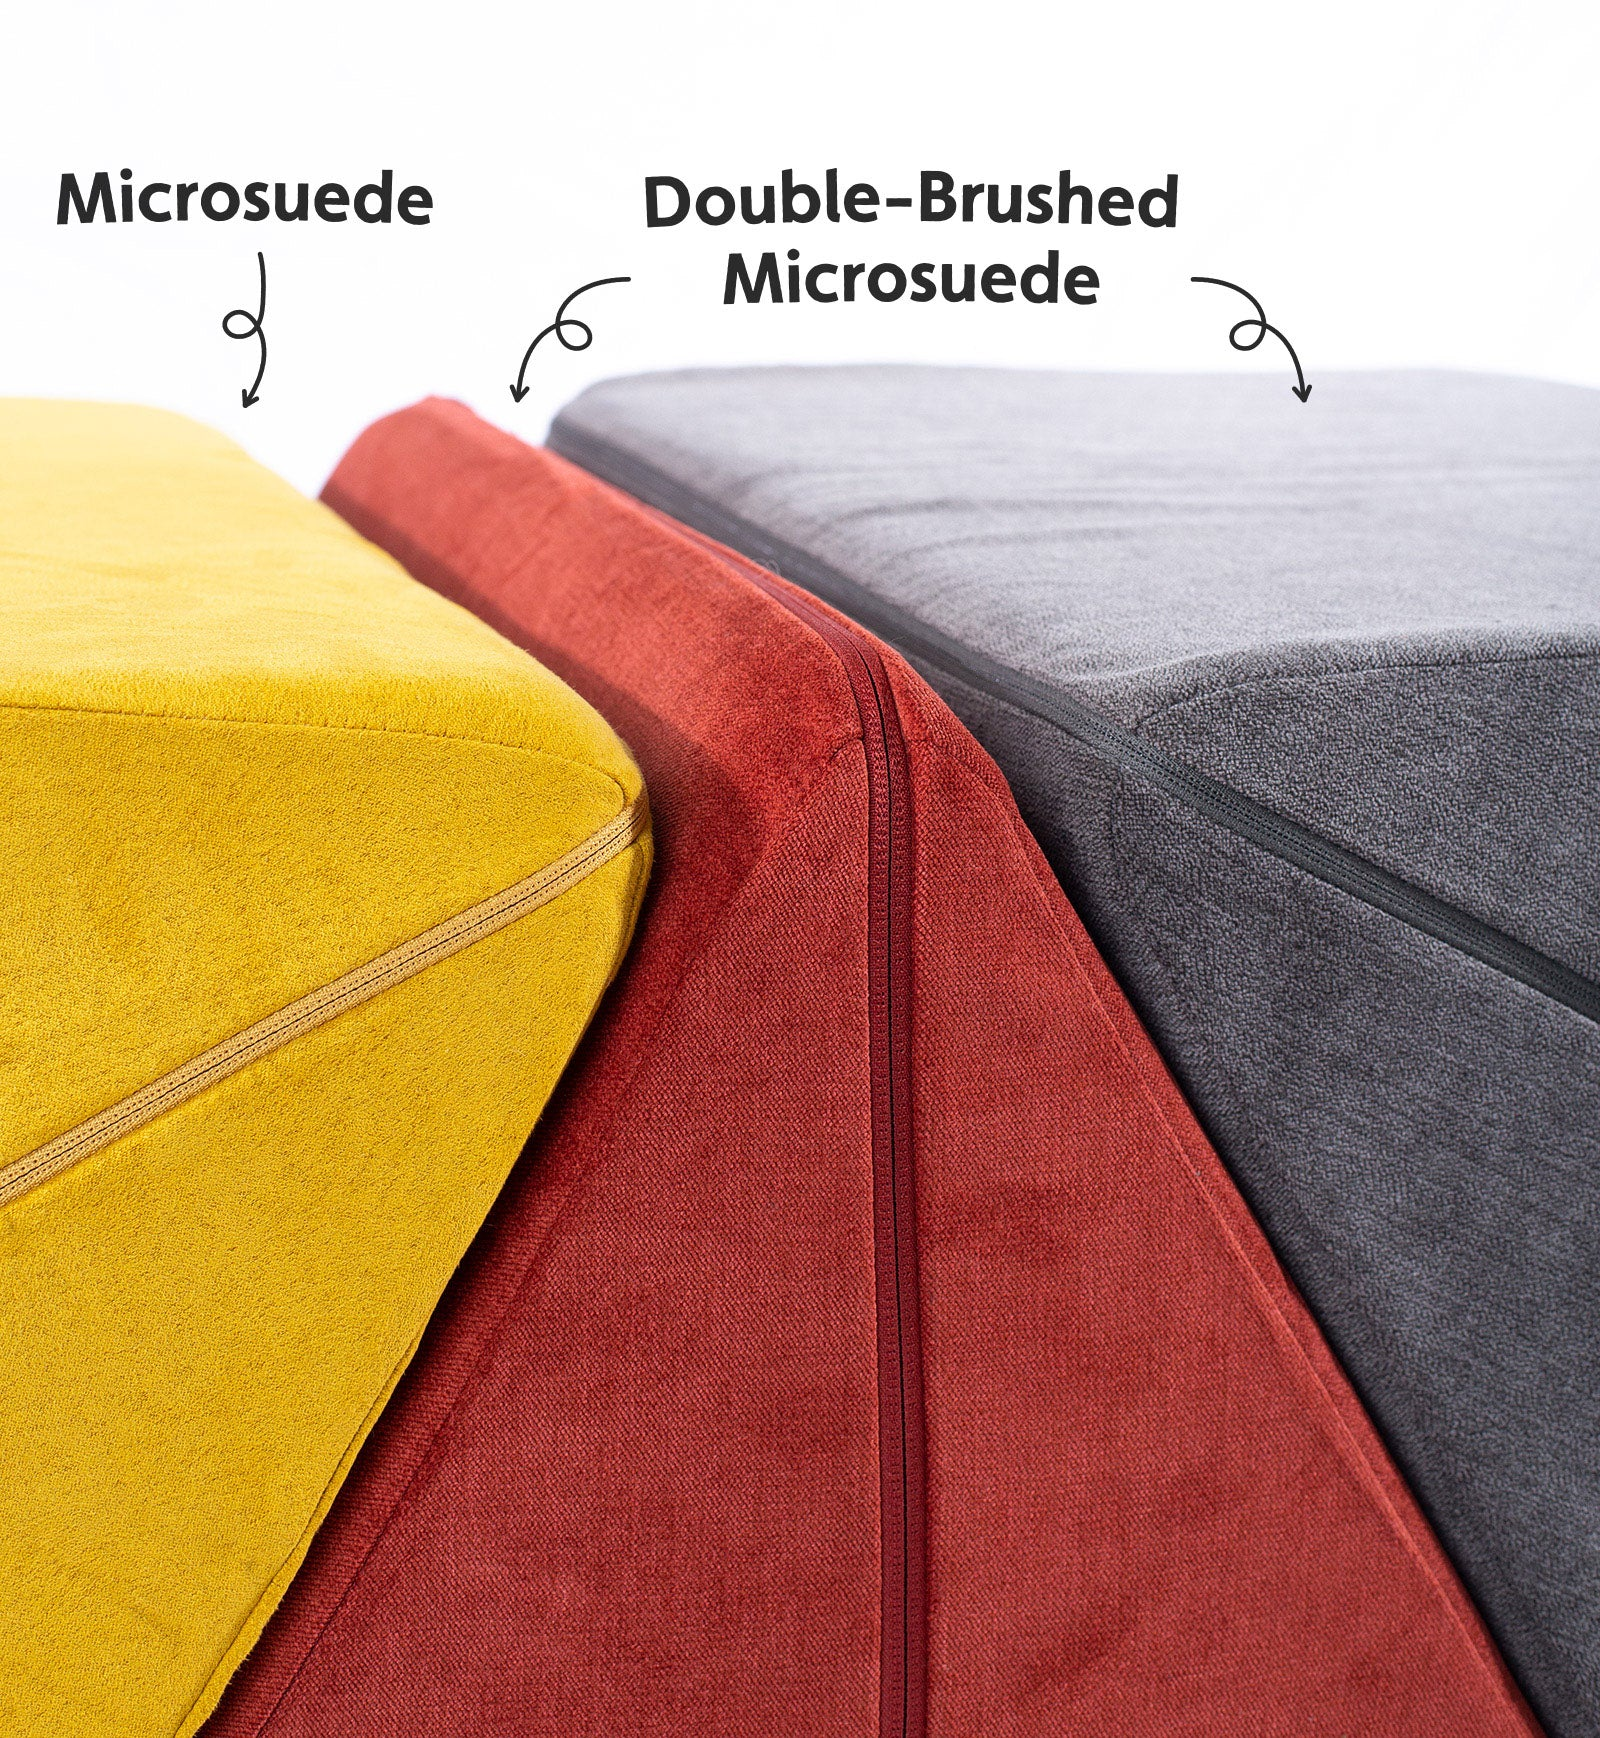 Three Nugget pillows with different color covers stacked side by side, one microsuede in Saturn, and two in double-brushed microsuede in Redwood and Harbor